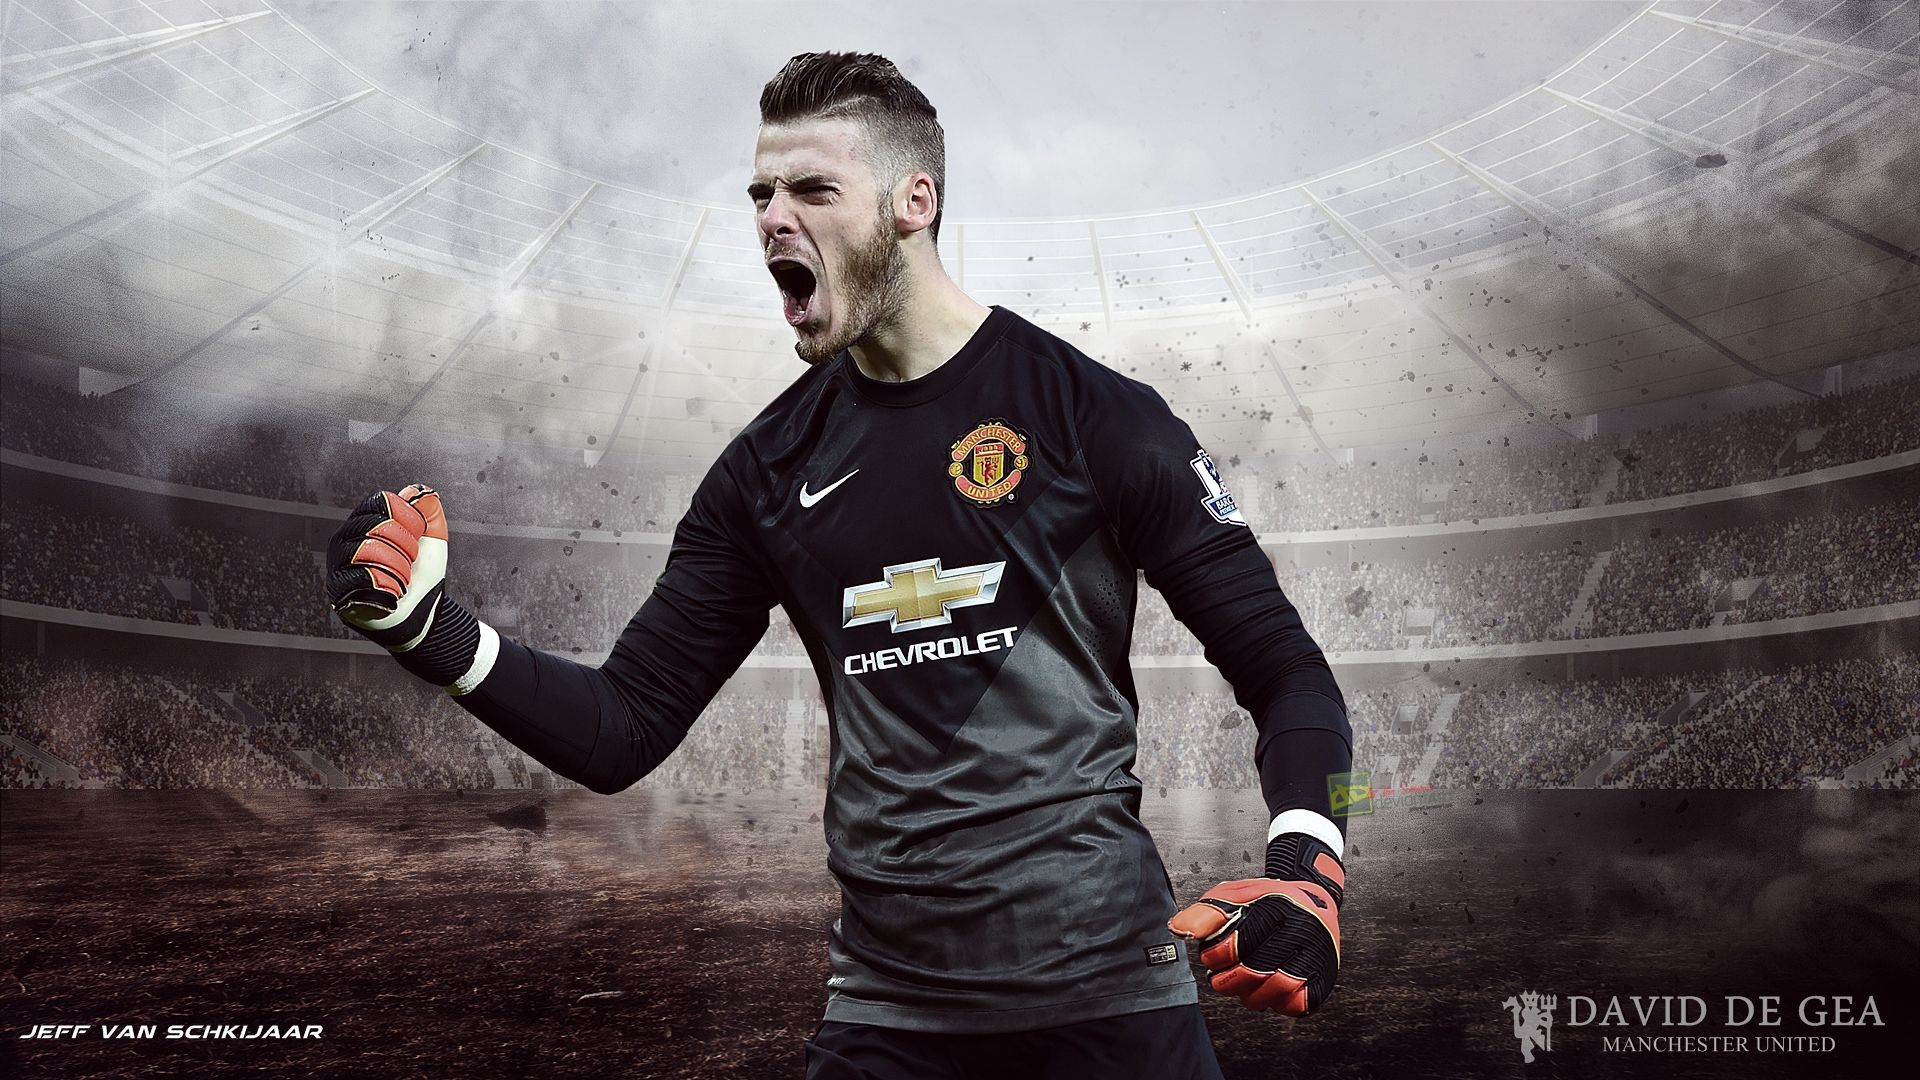 David De Gea Manchester United Wallpaper